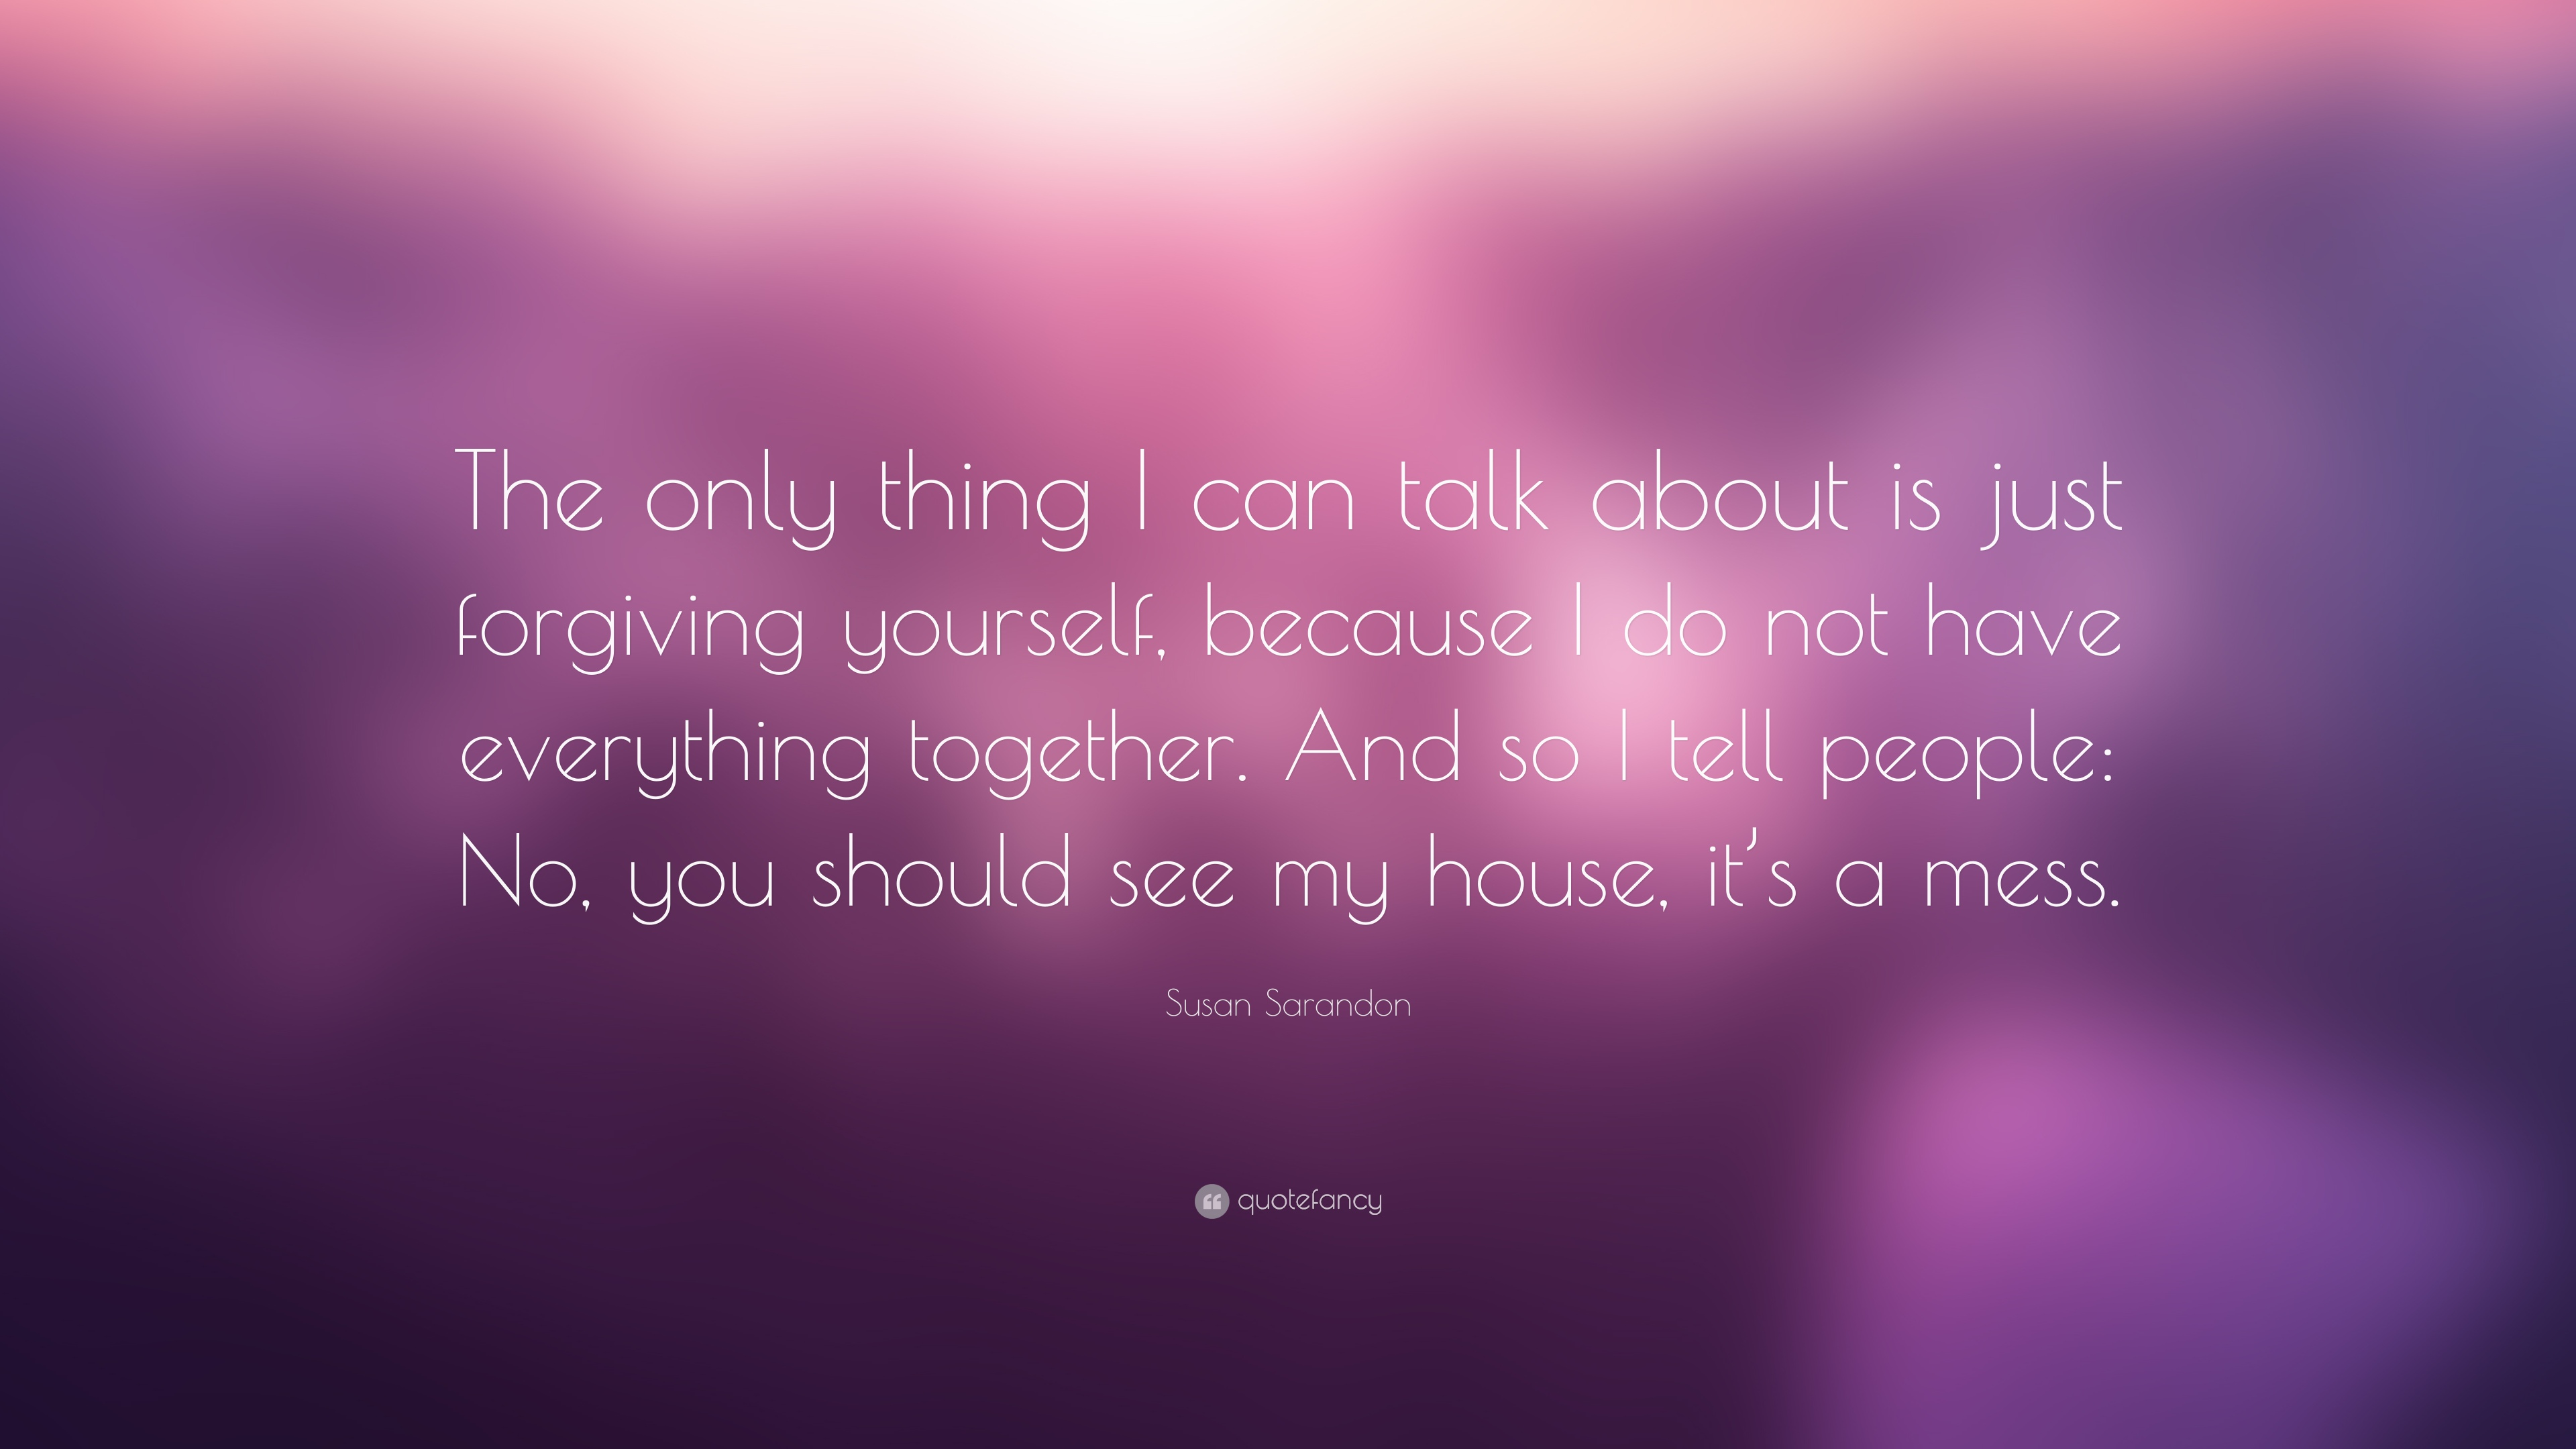 Susan Sarandon Quote: U201cThe Only Thing I Can Talk About Is Just Forgiving  Yourself